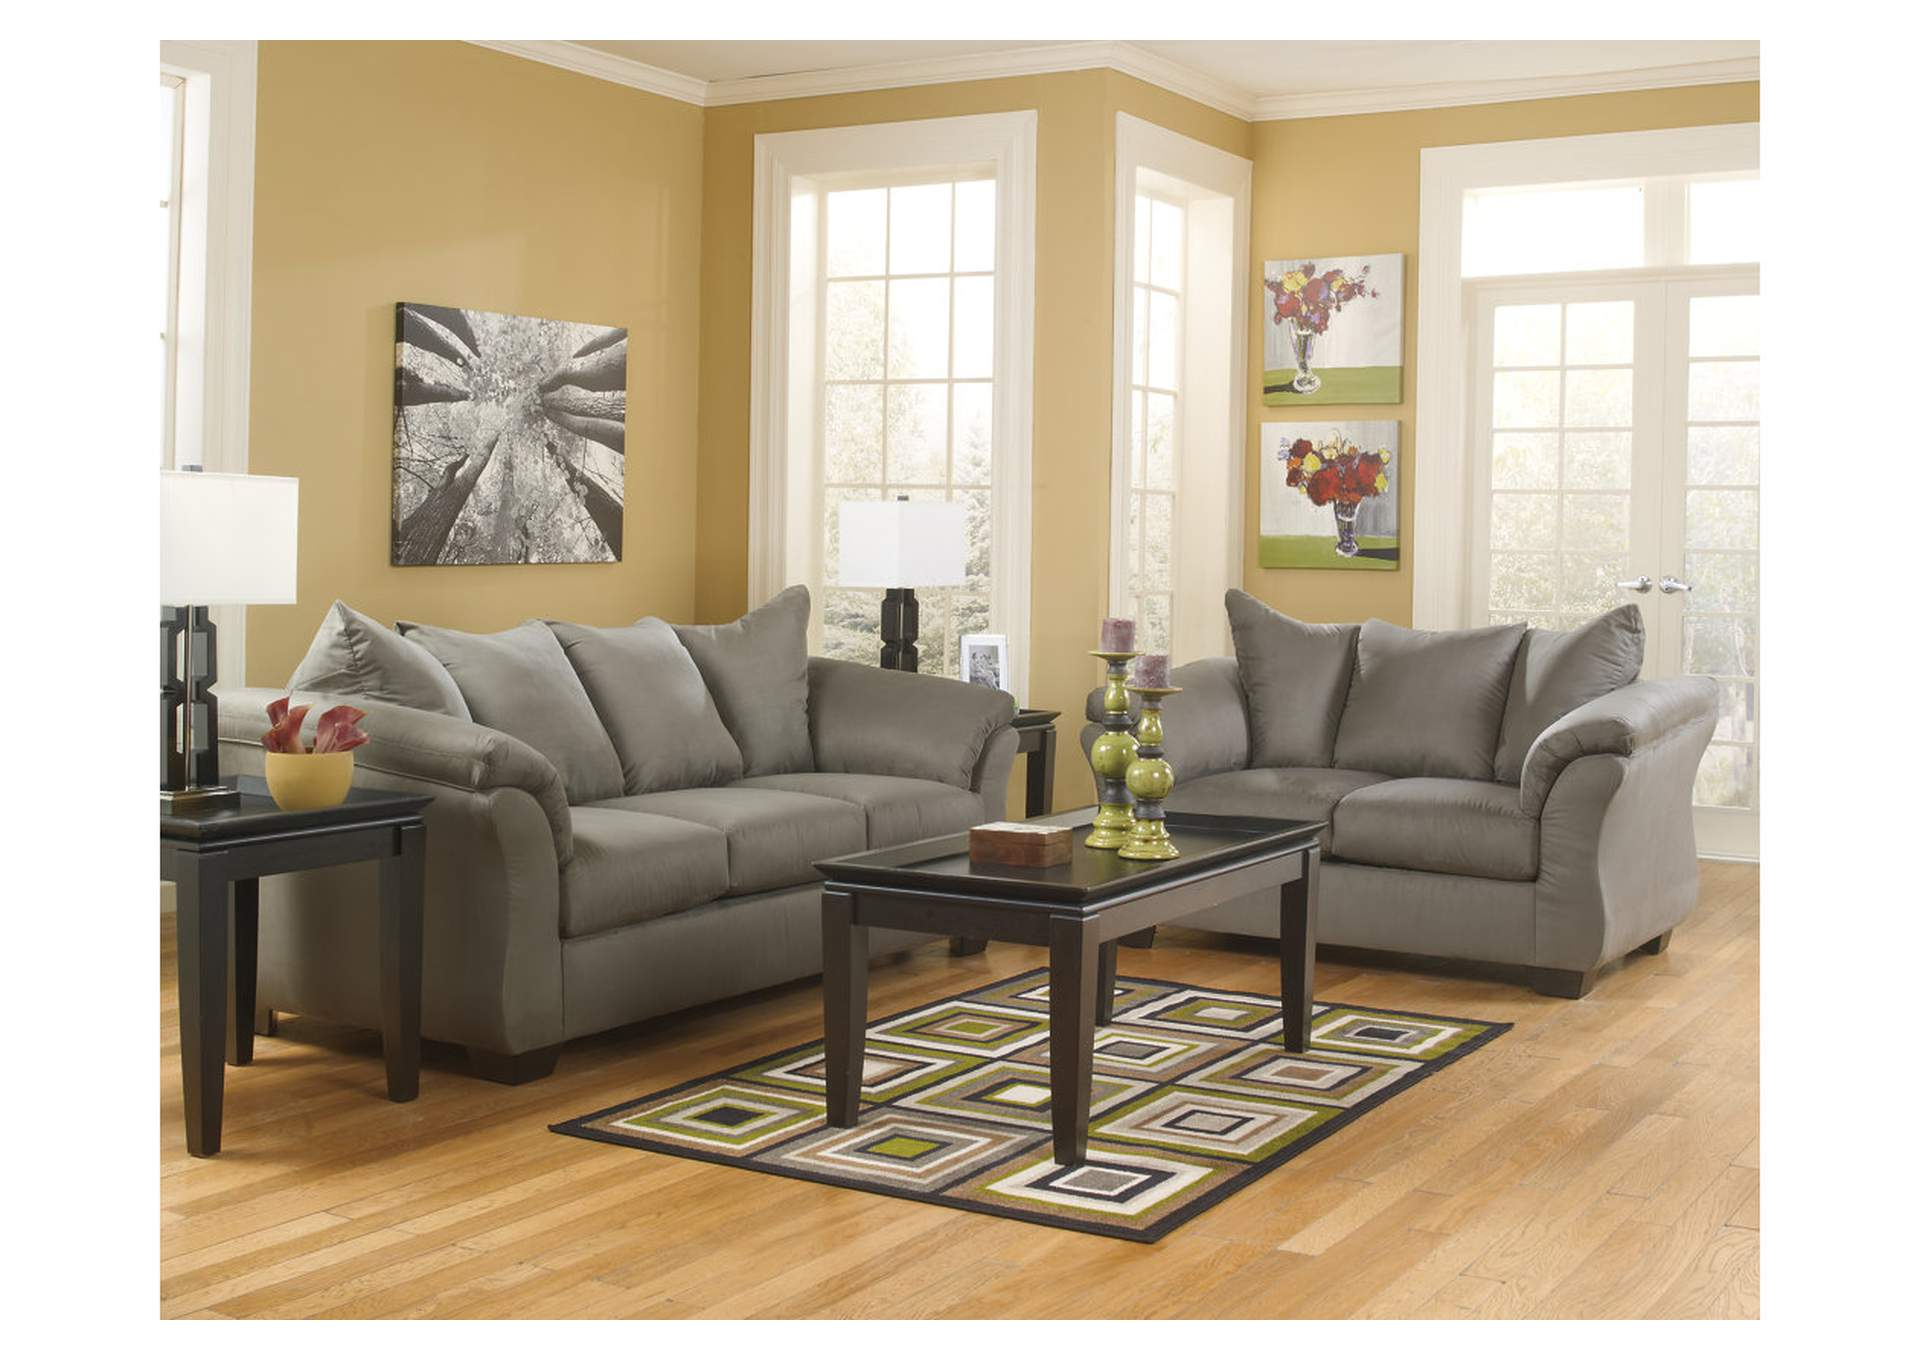 Harlem Furniture Manhattan Bronx Ny Darcy Cobblestone Sofa Loveseat